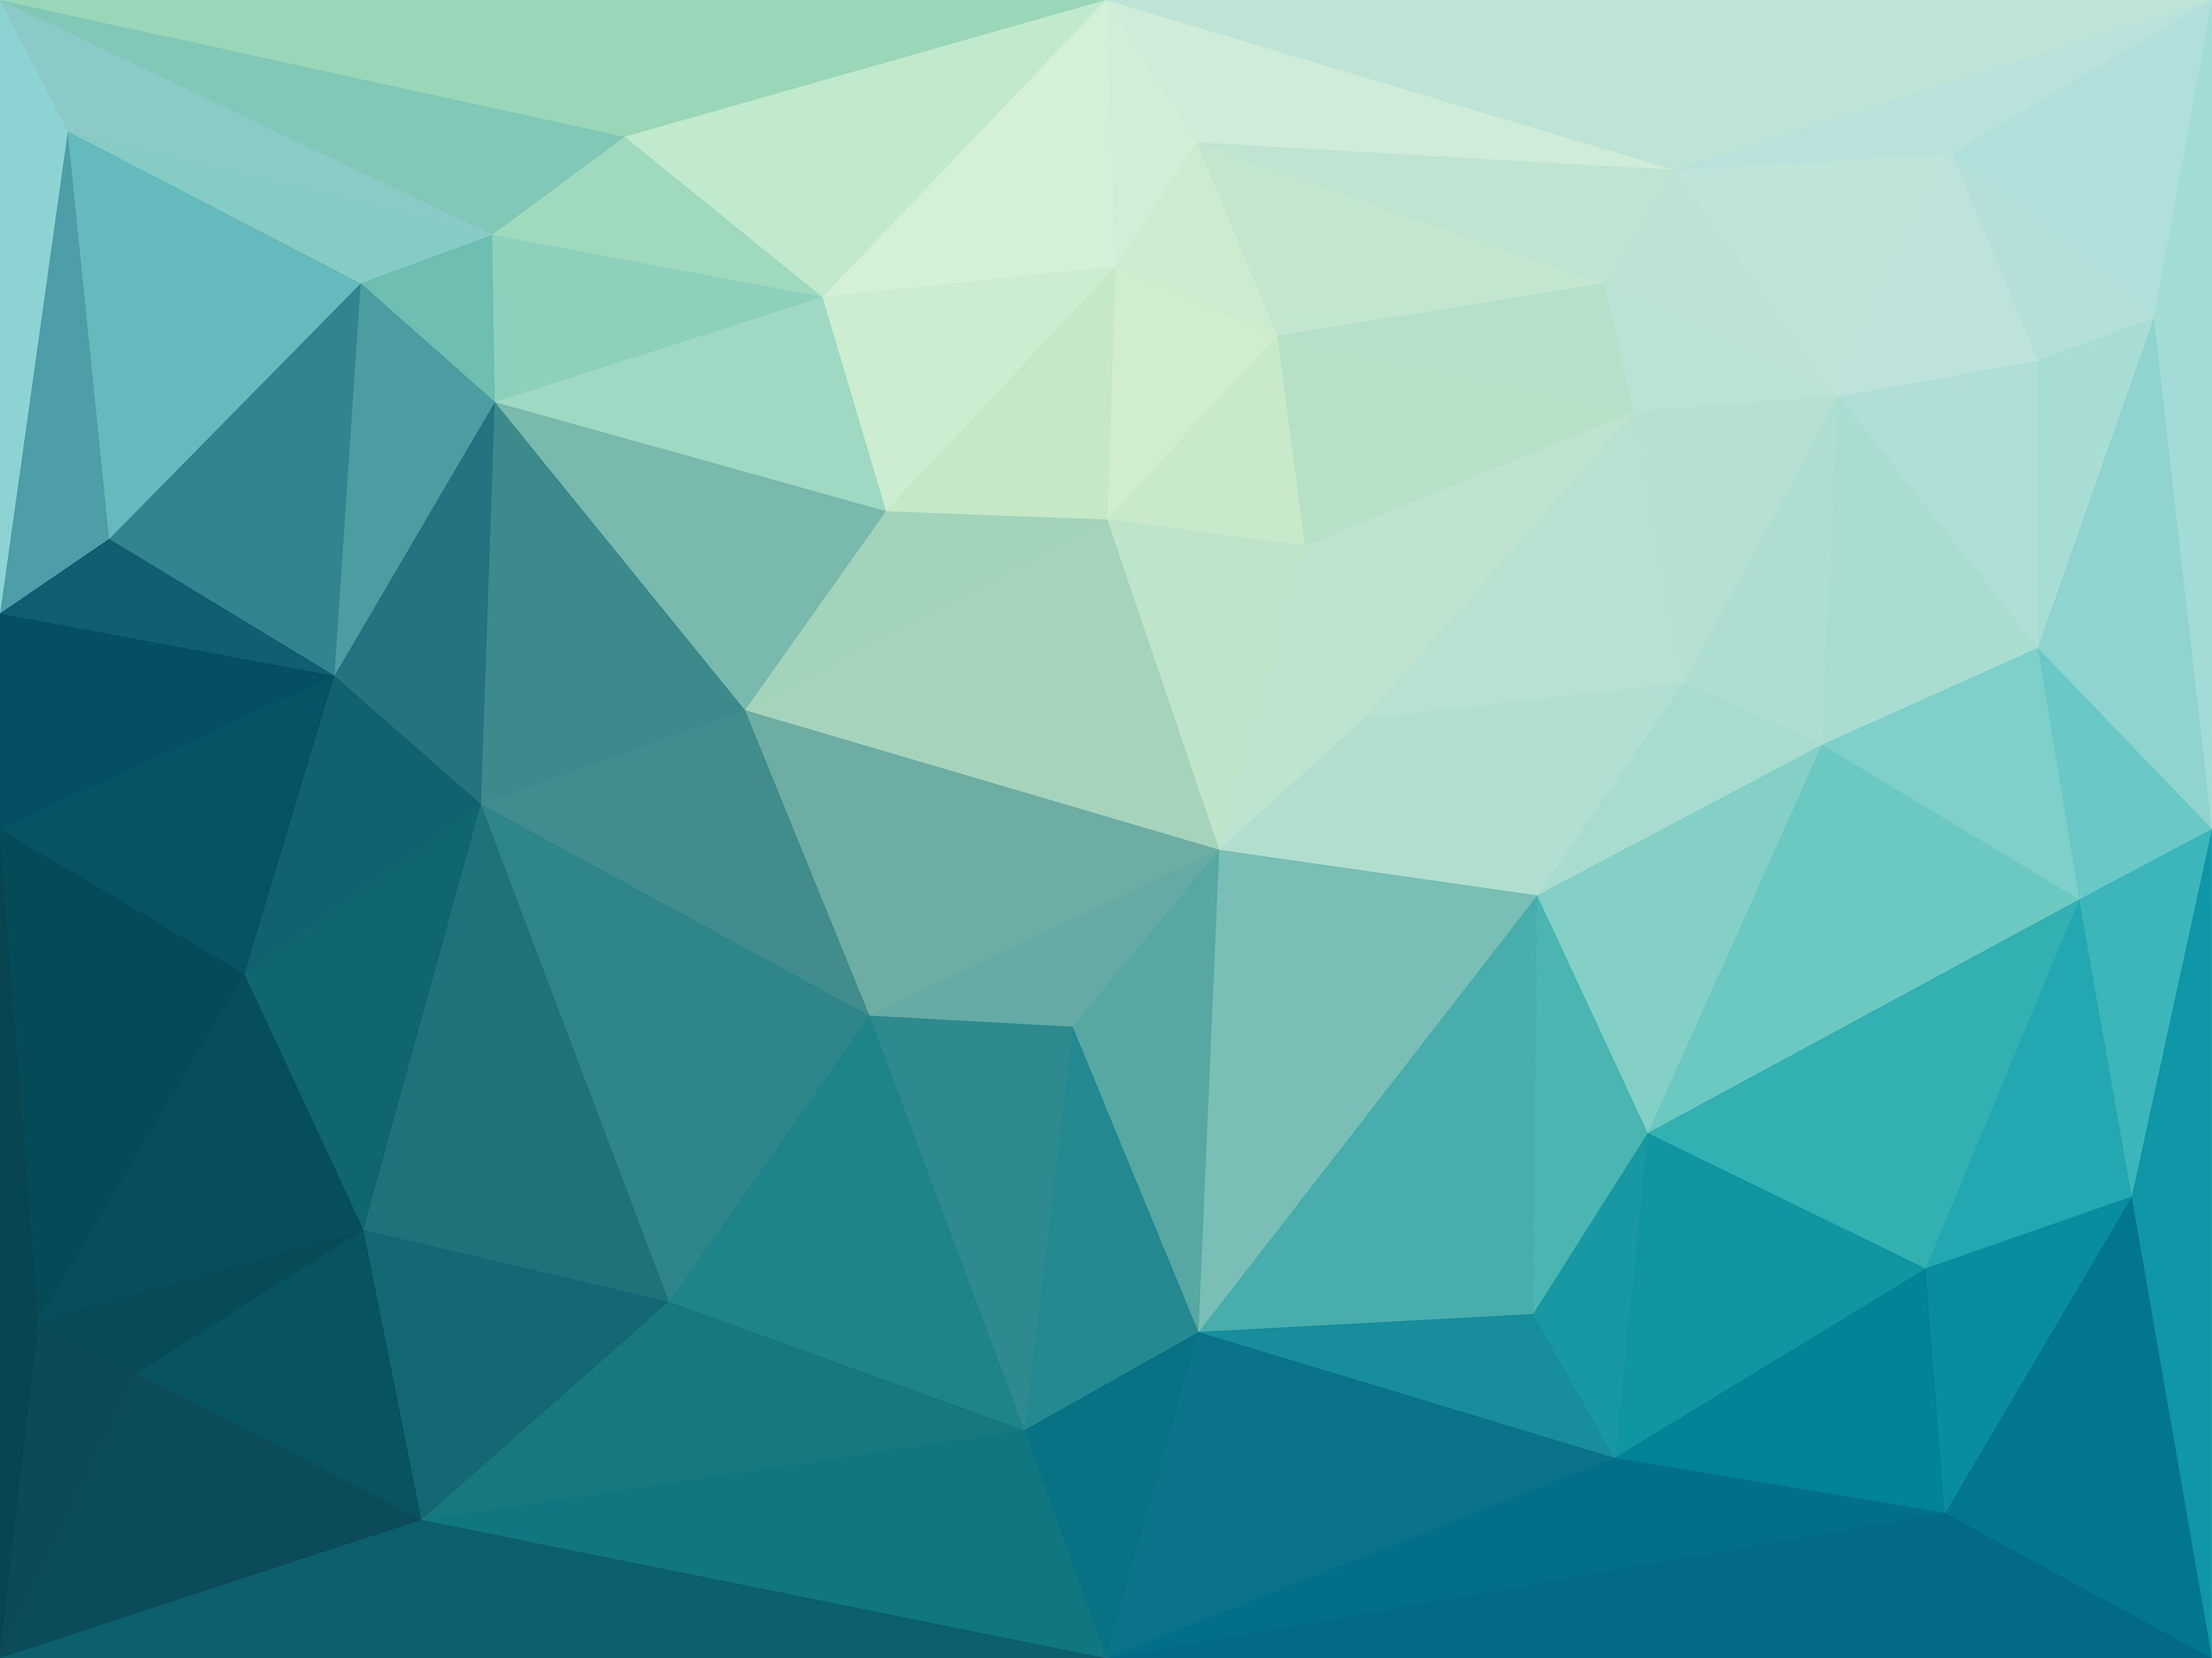 3d Wallpaper Android Parallax Triangle Wallpapers Pictures Images